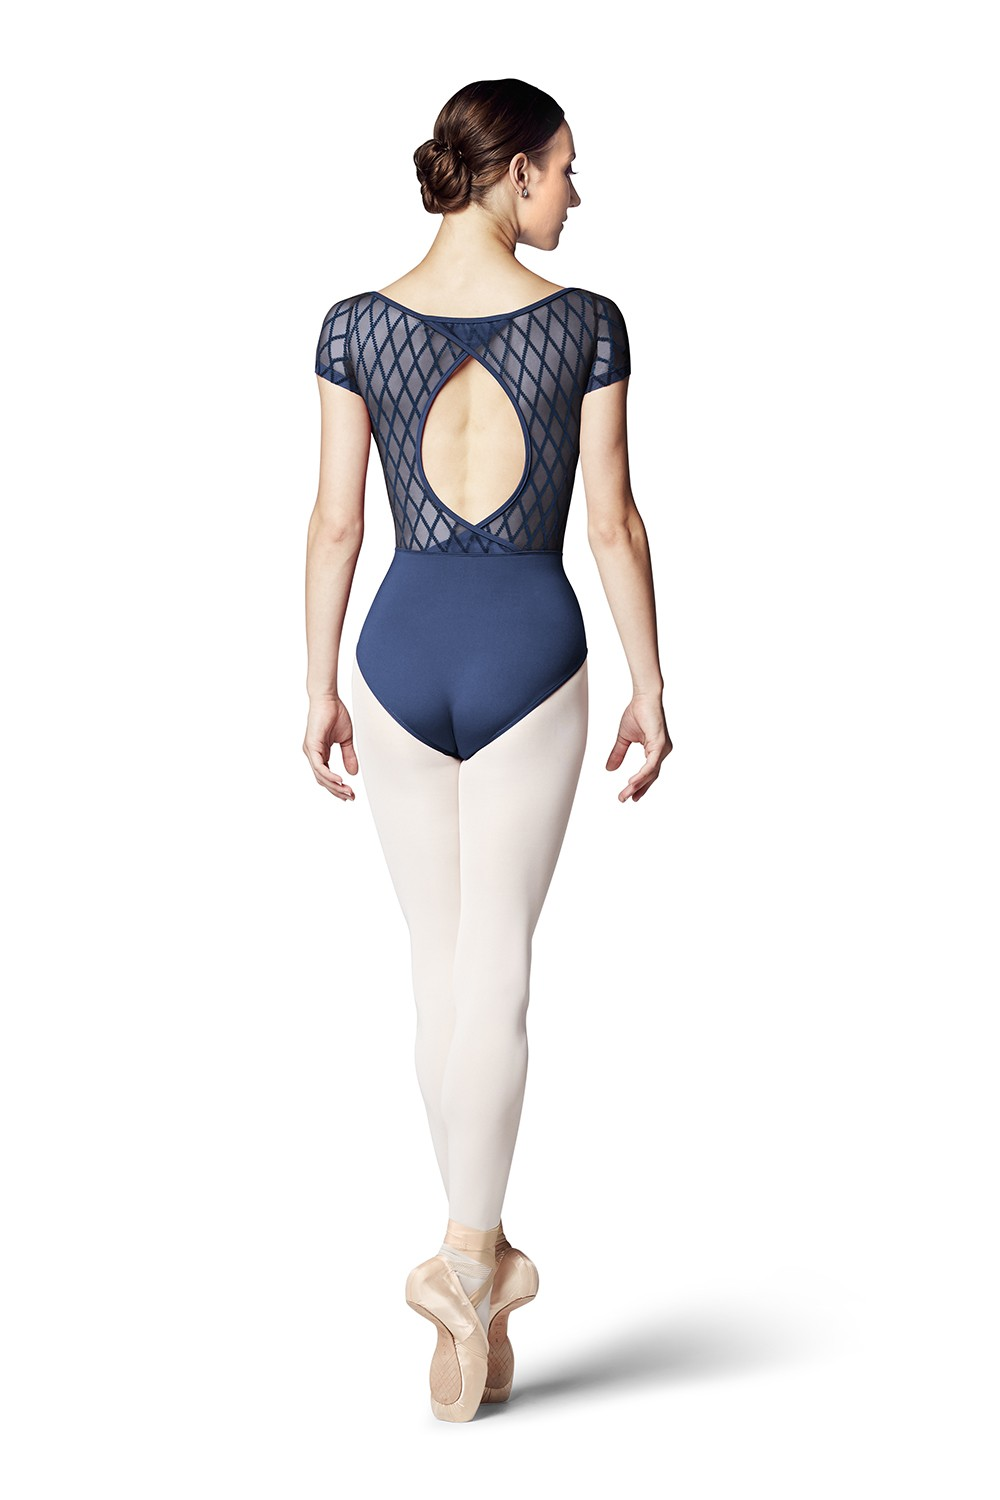 Sanaa Women's Dance Leotards